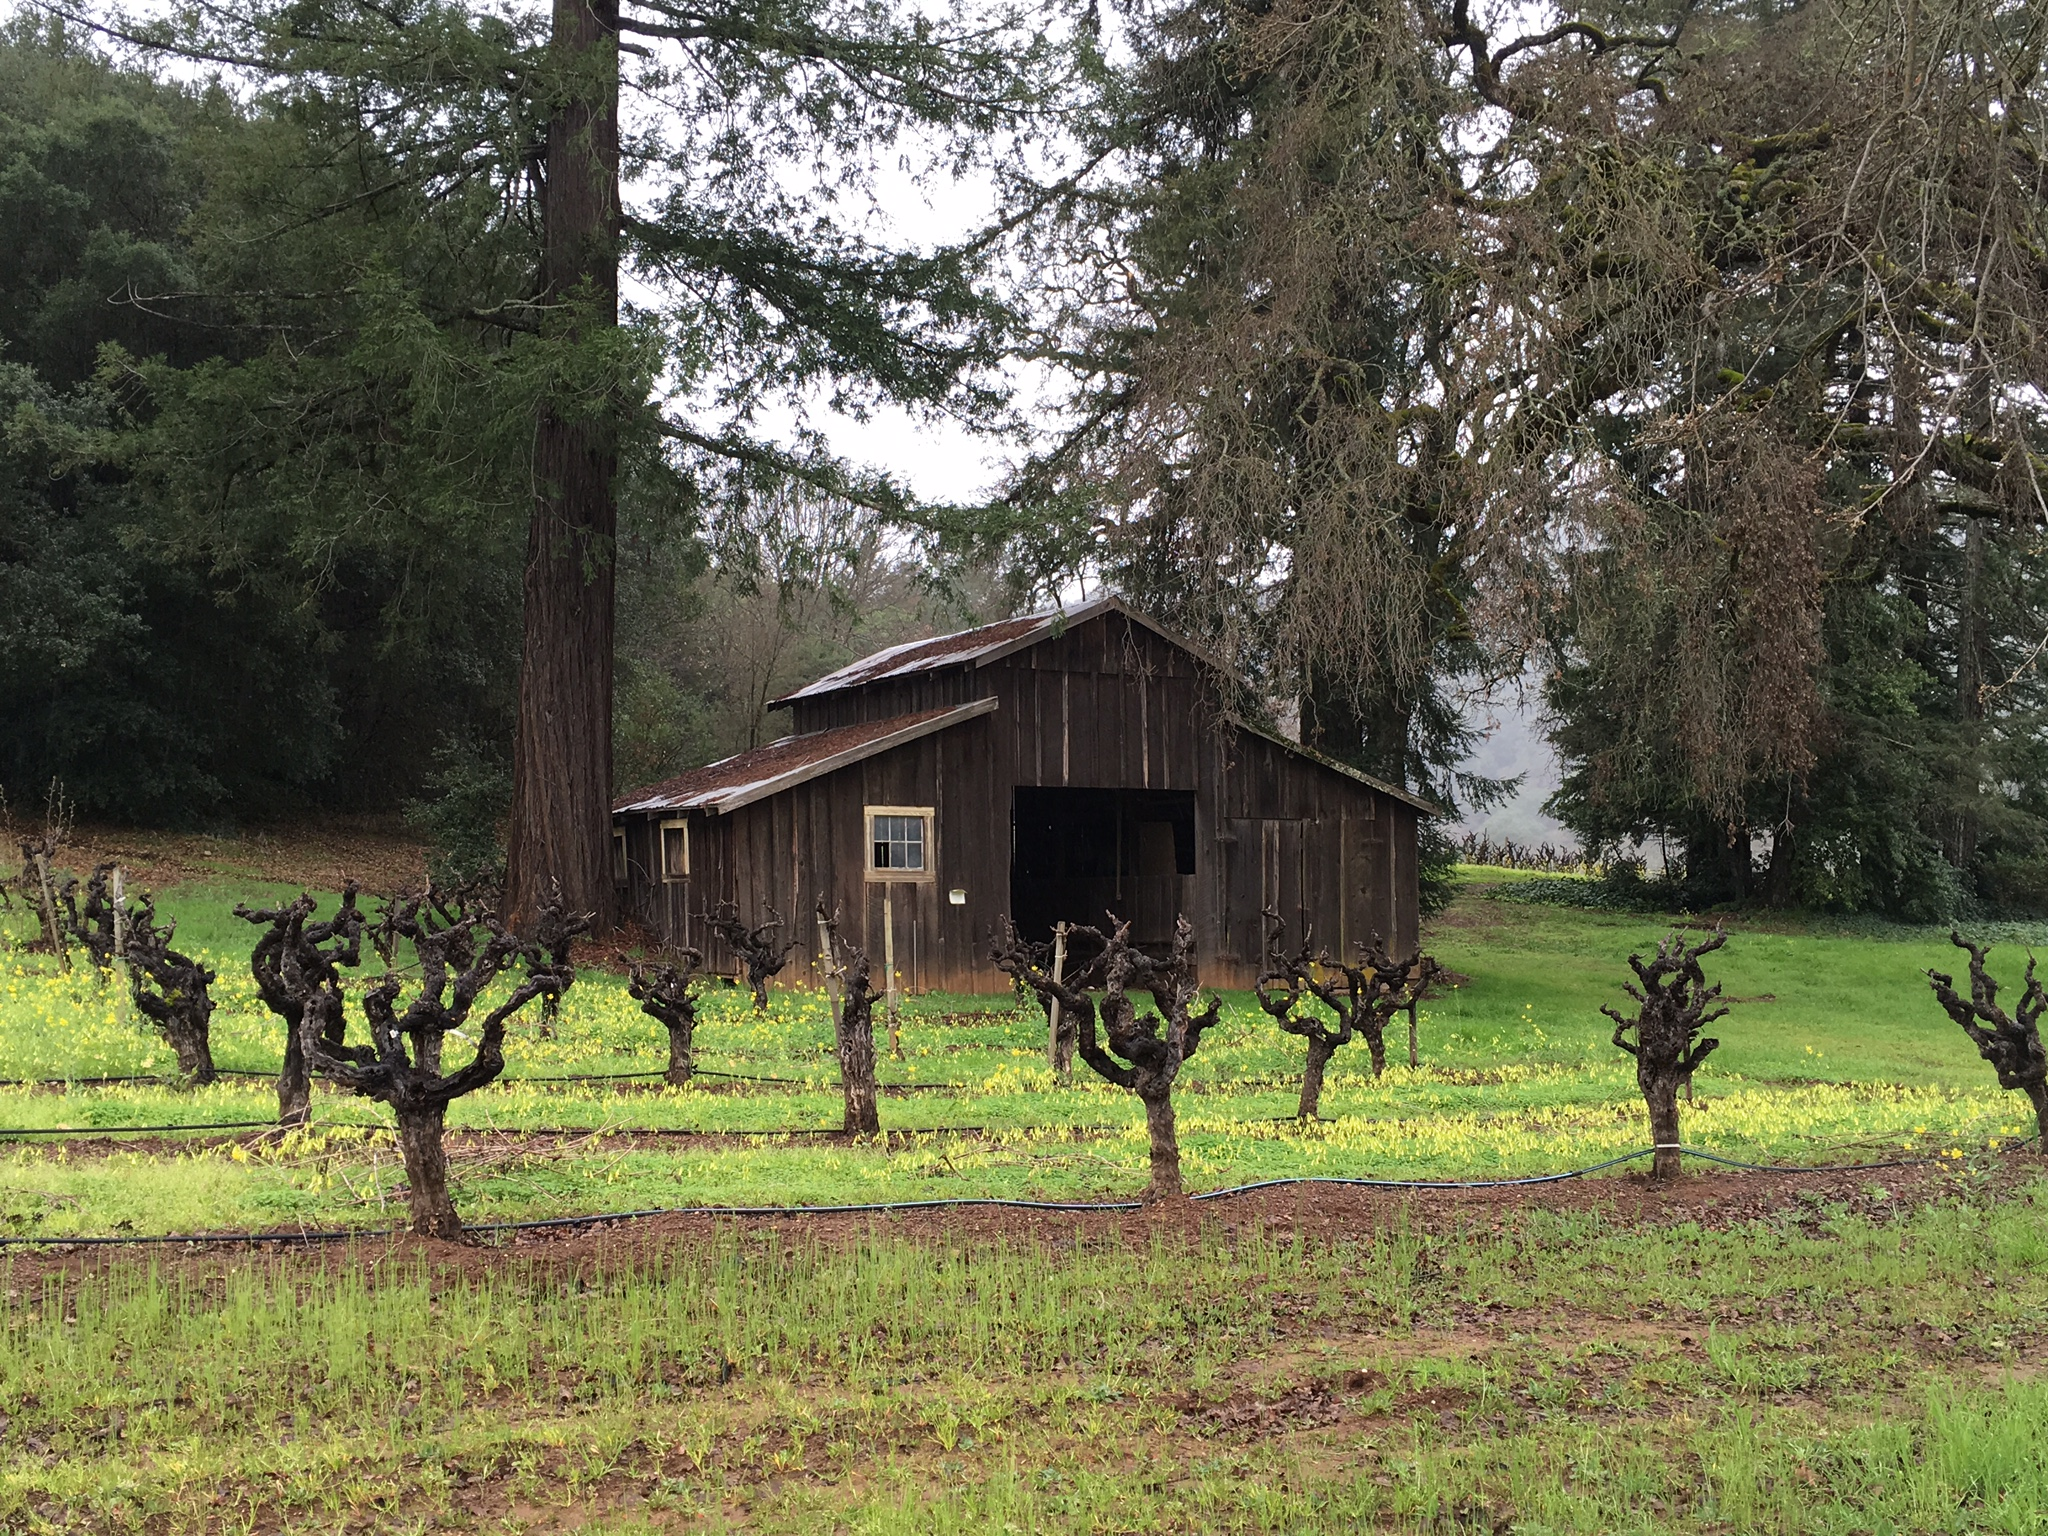 Old barn in Vineyard near Healdsburg